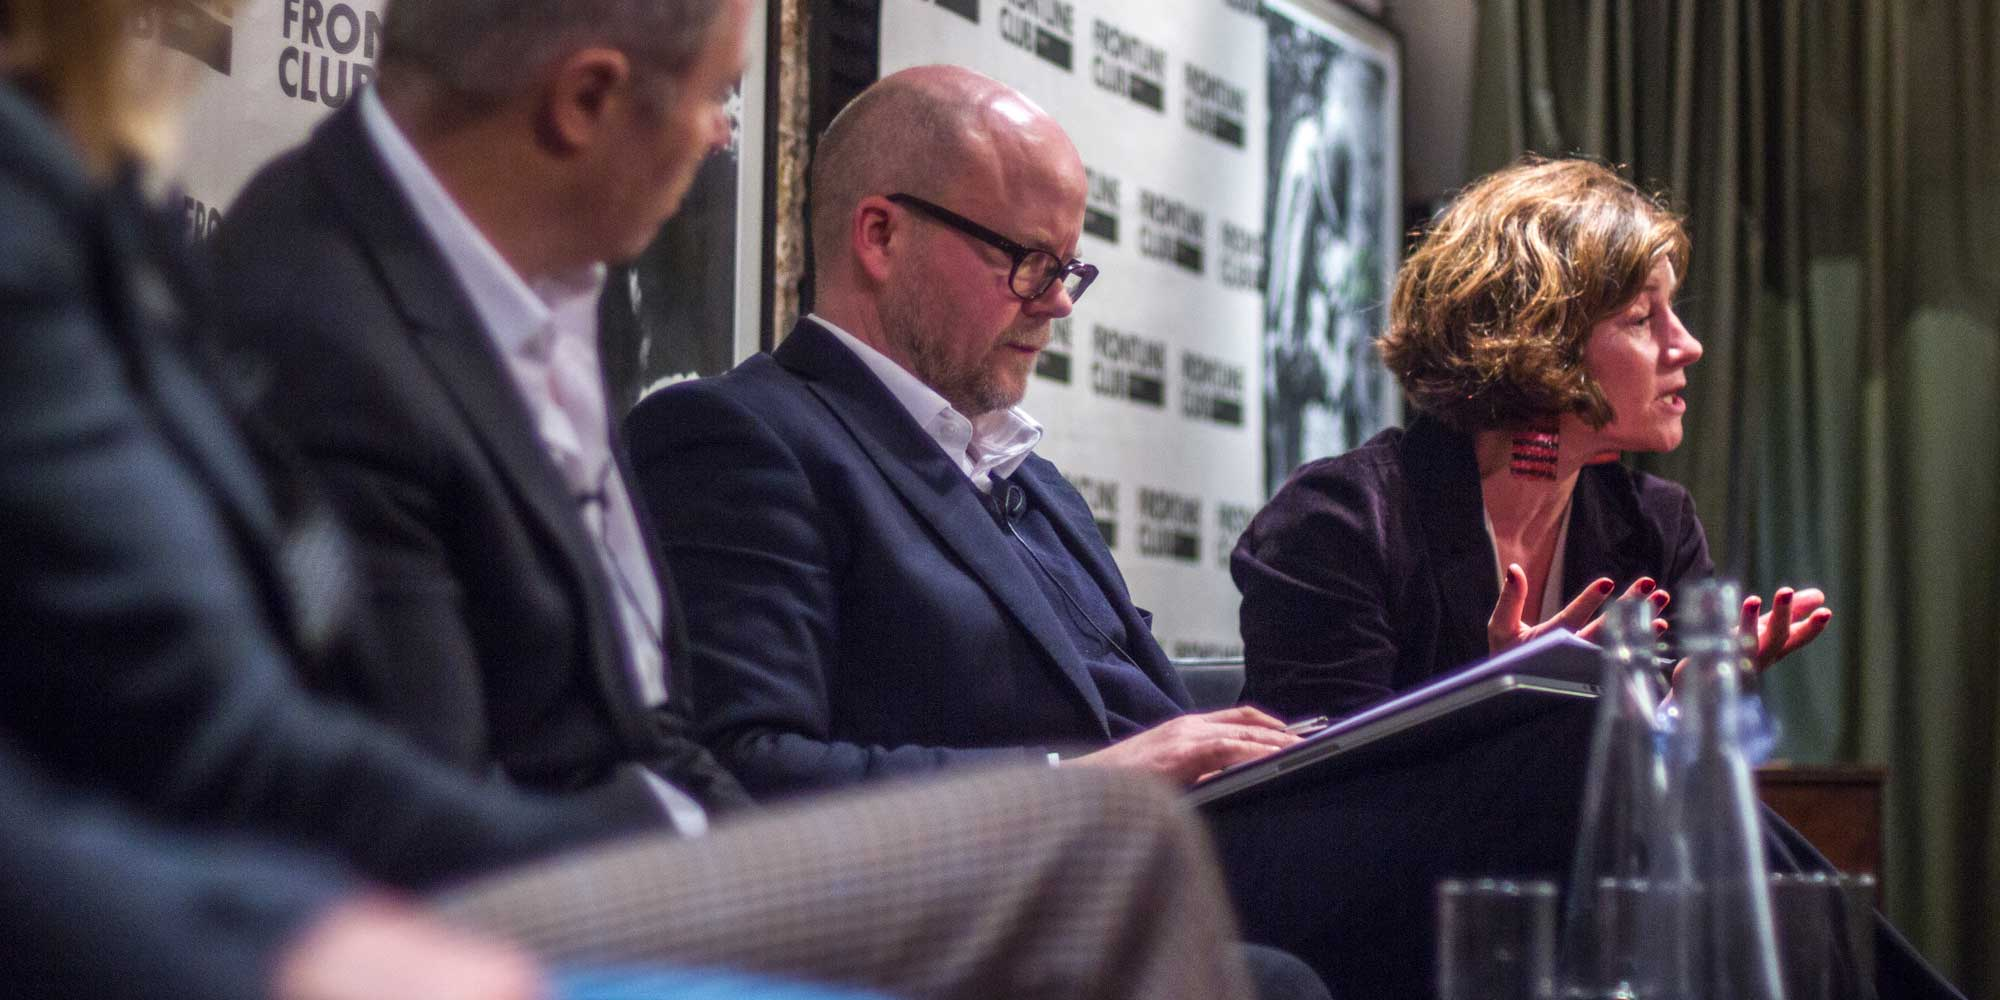 Toby Young and Natalie Nougayrède. Photo by Tolly Robinson